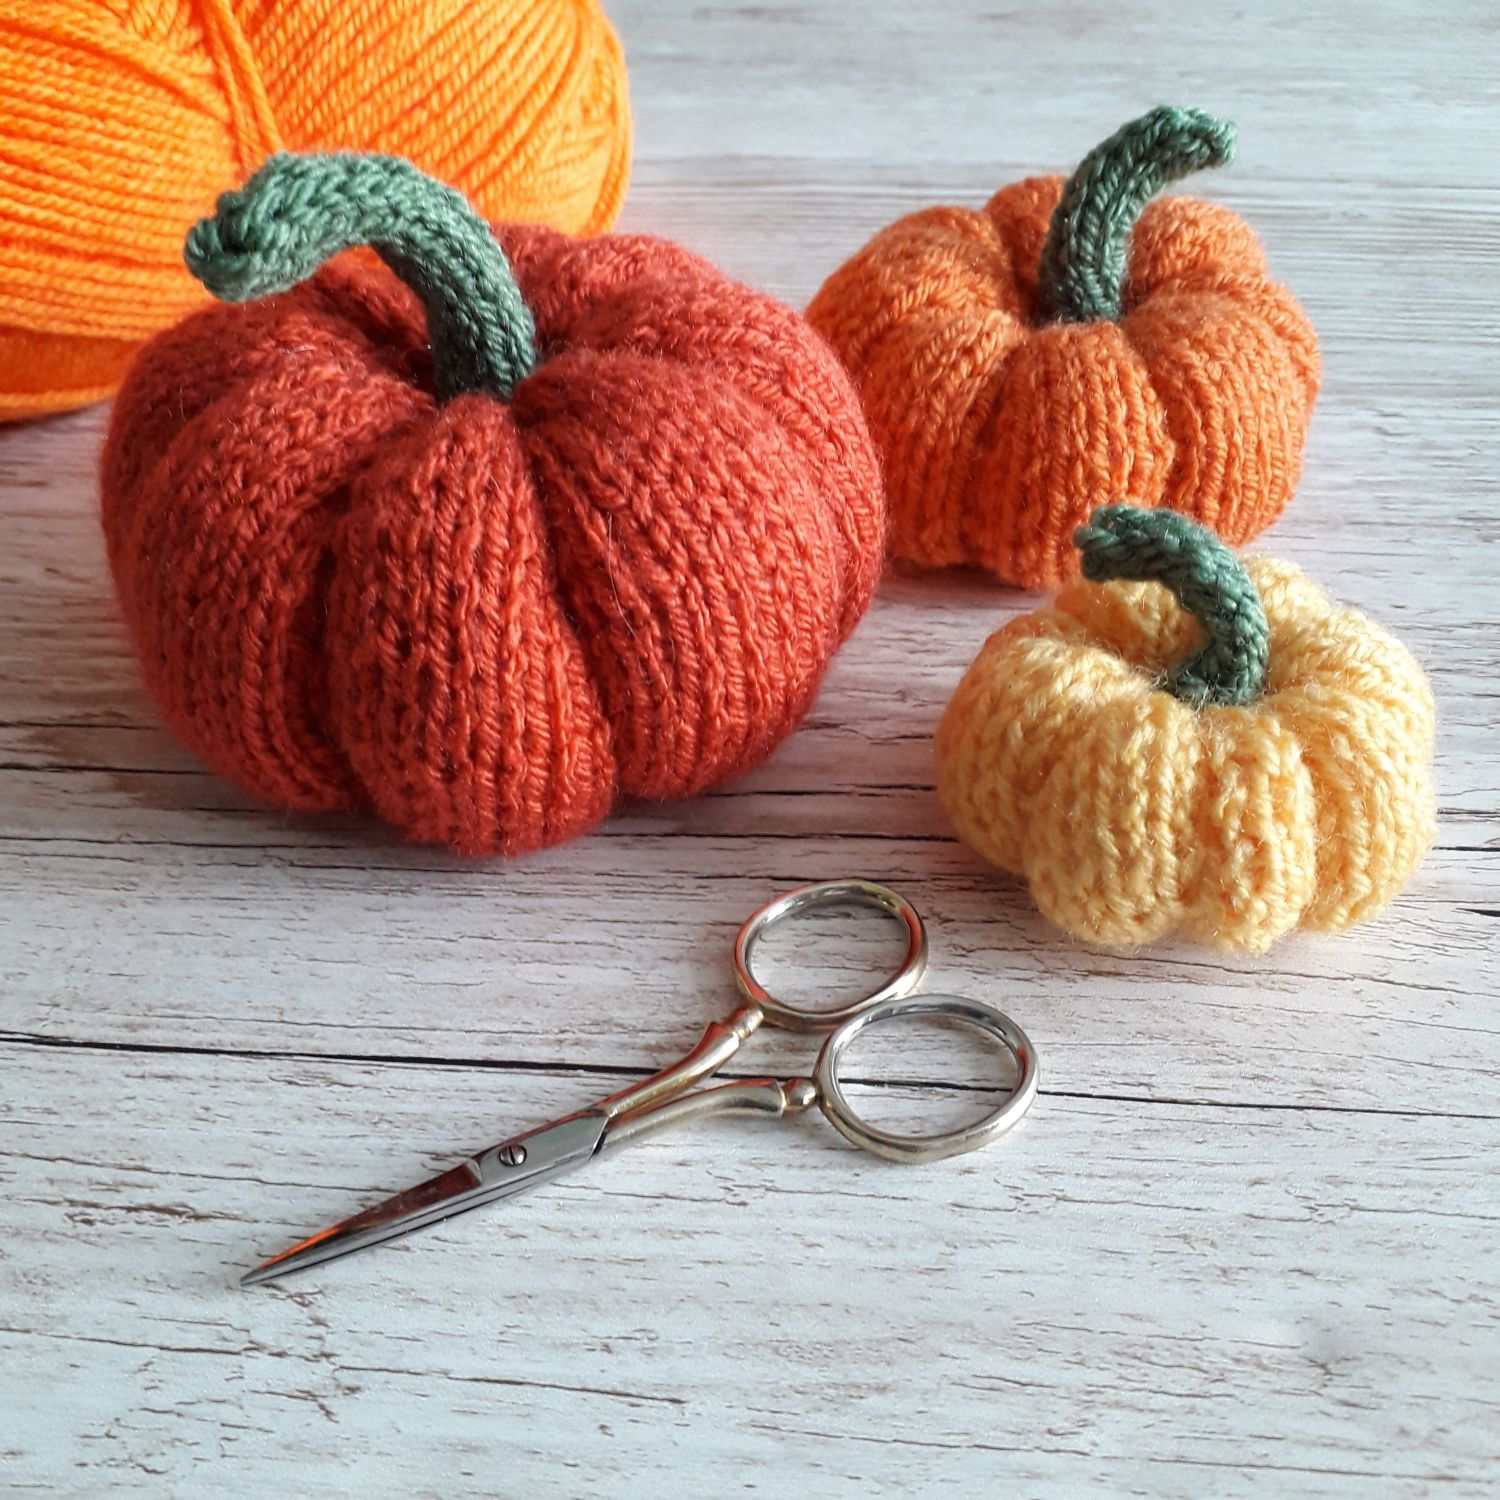 Easy Knitted Pumpkin Pattern | Easy knitting patterns ...